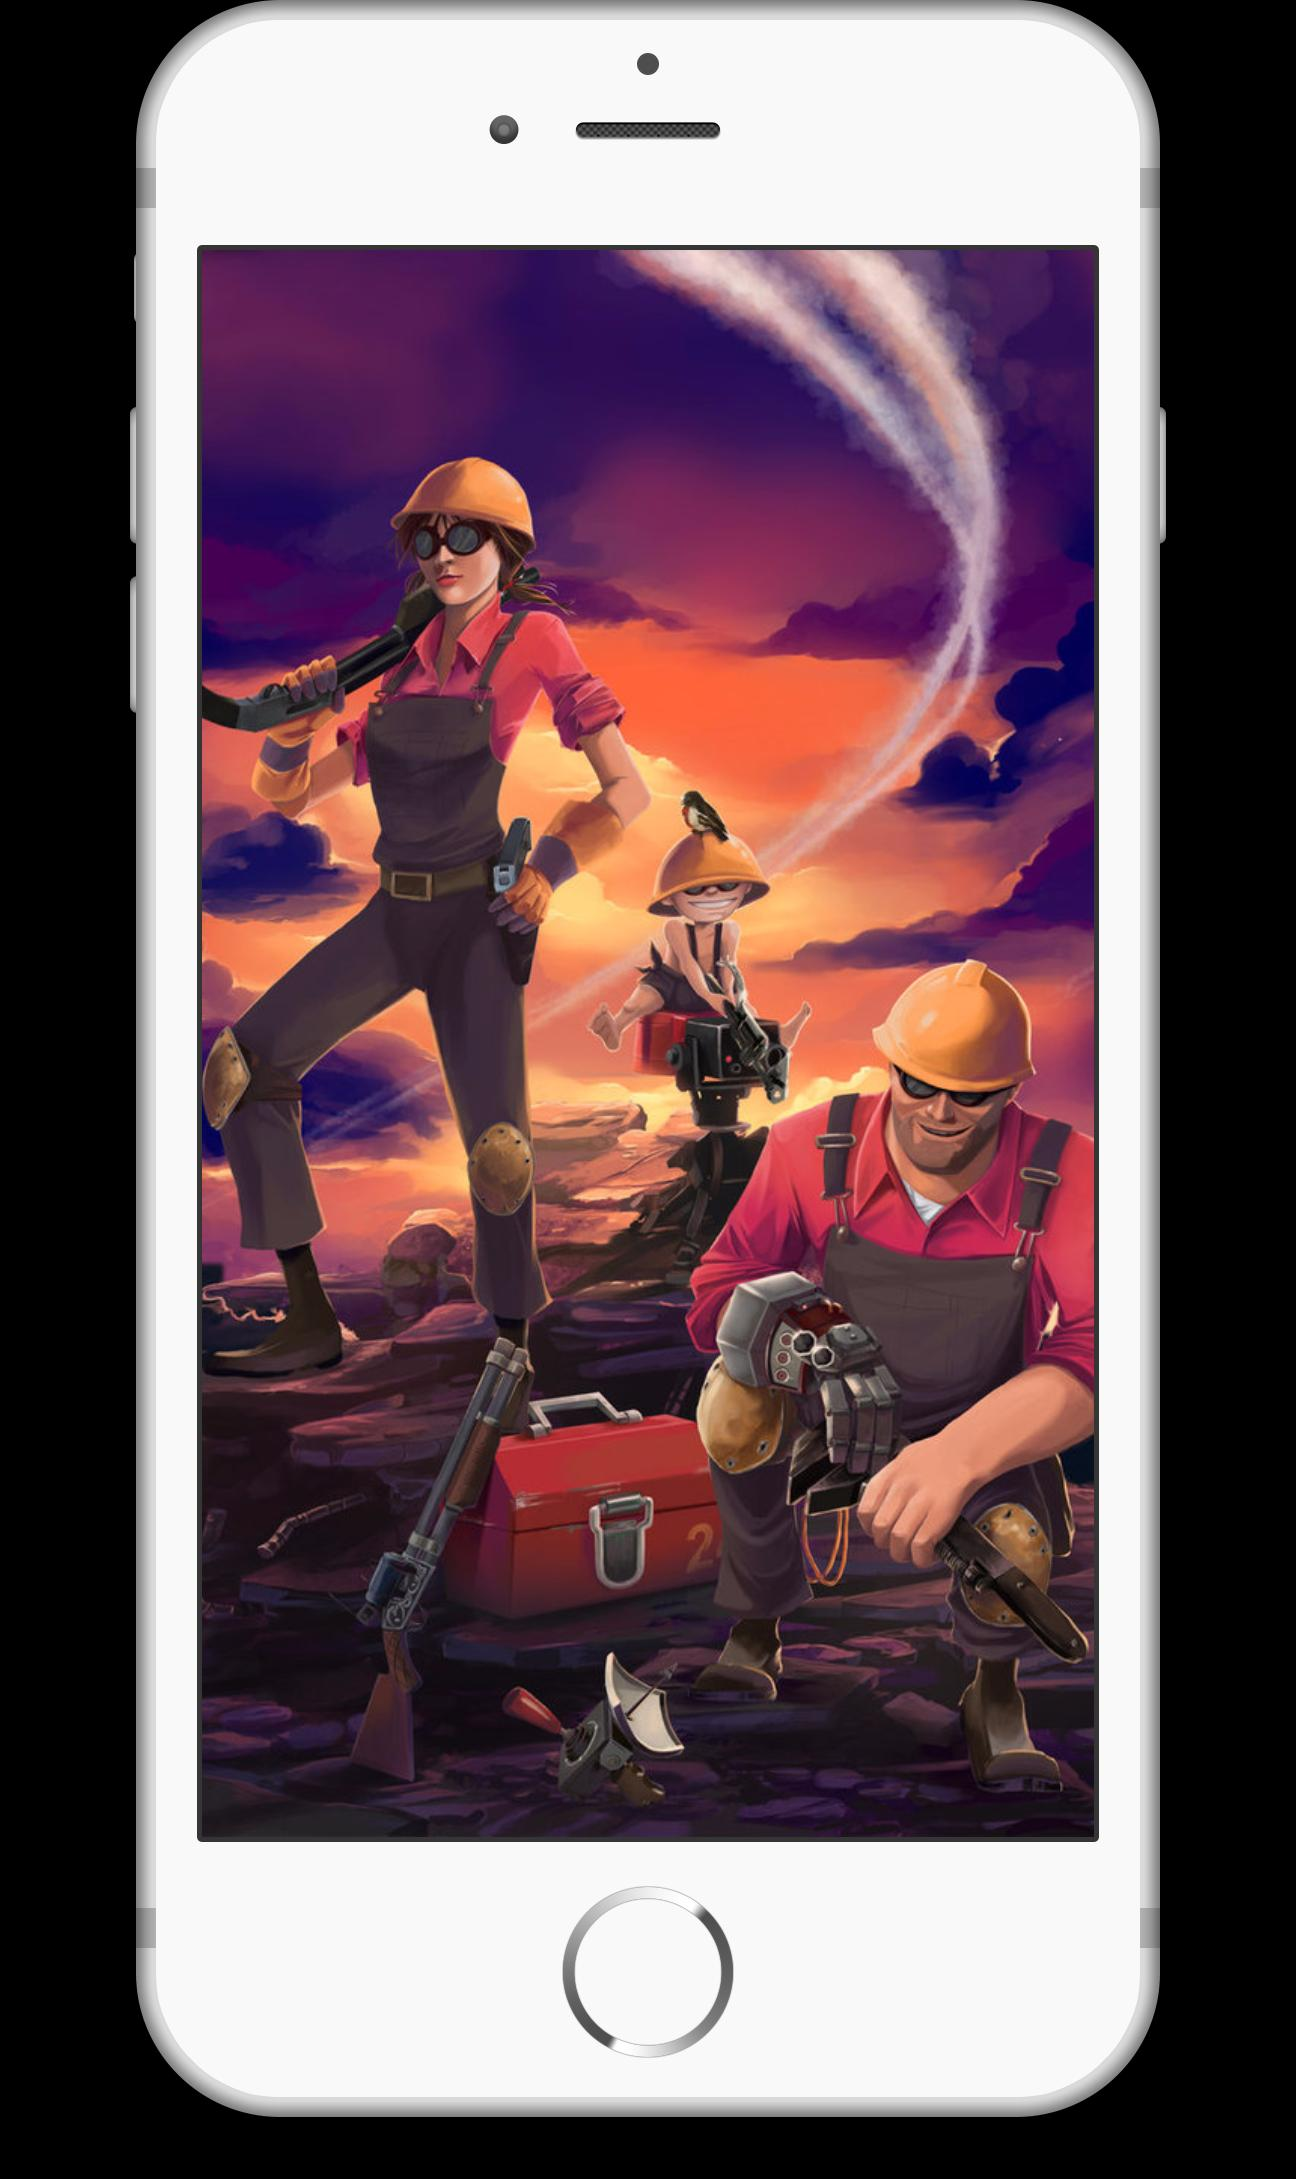 Team Fortress 2 Wallpaper Hd For Android Apk Download